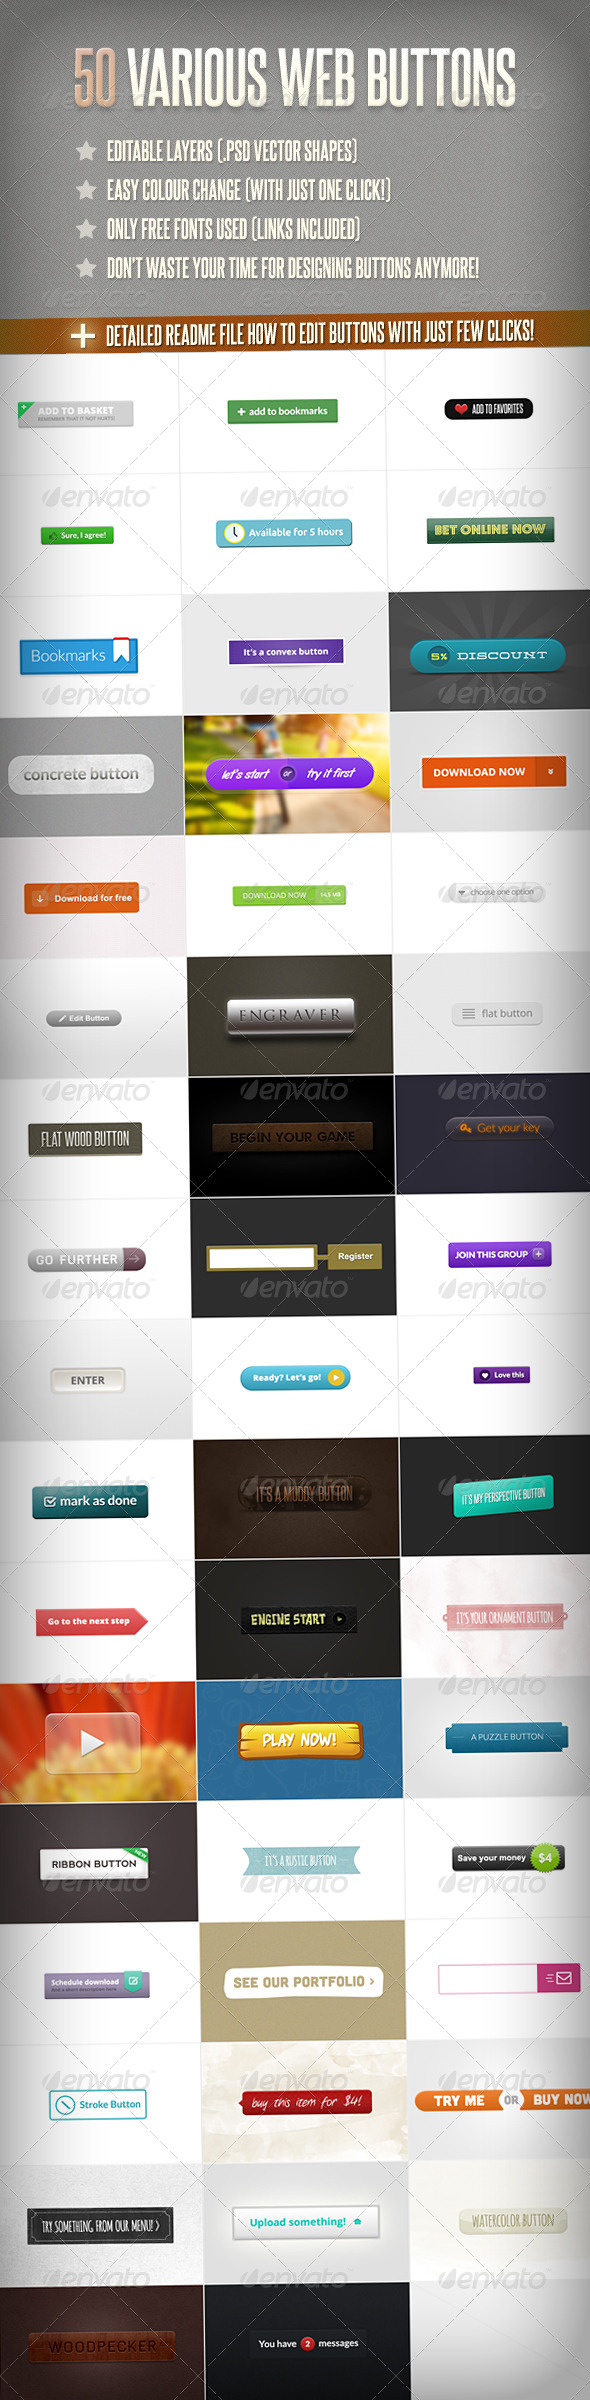 GraphicRiver 50 Various Web Buttons 4362503